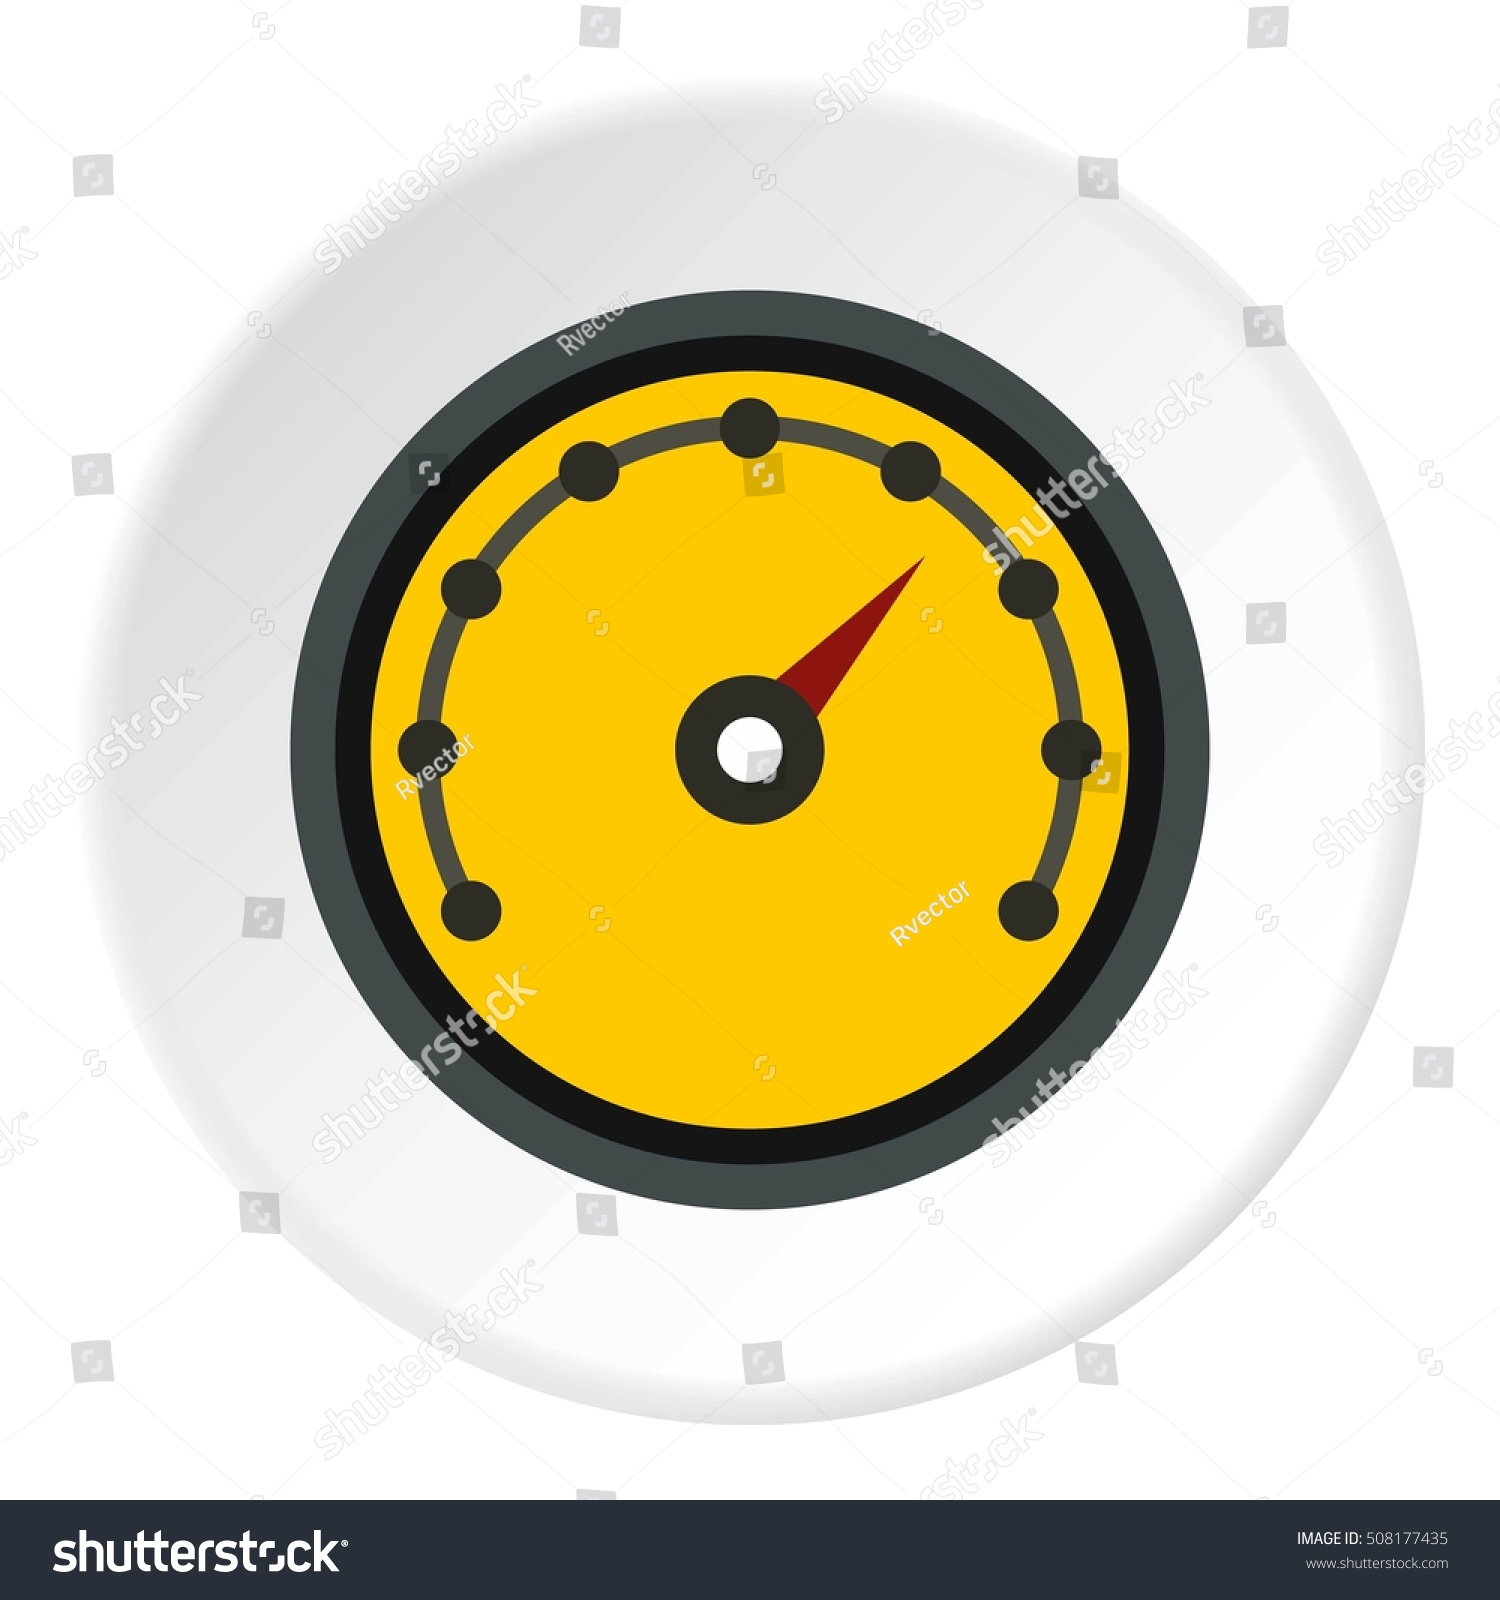 Speedometer Dot Notation Icon Flat Illustration Stock ...